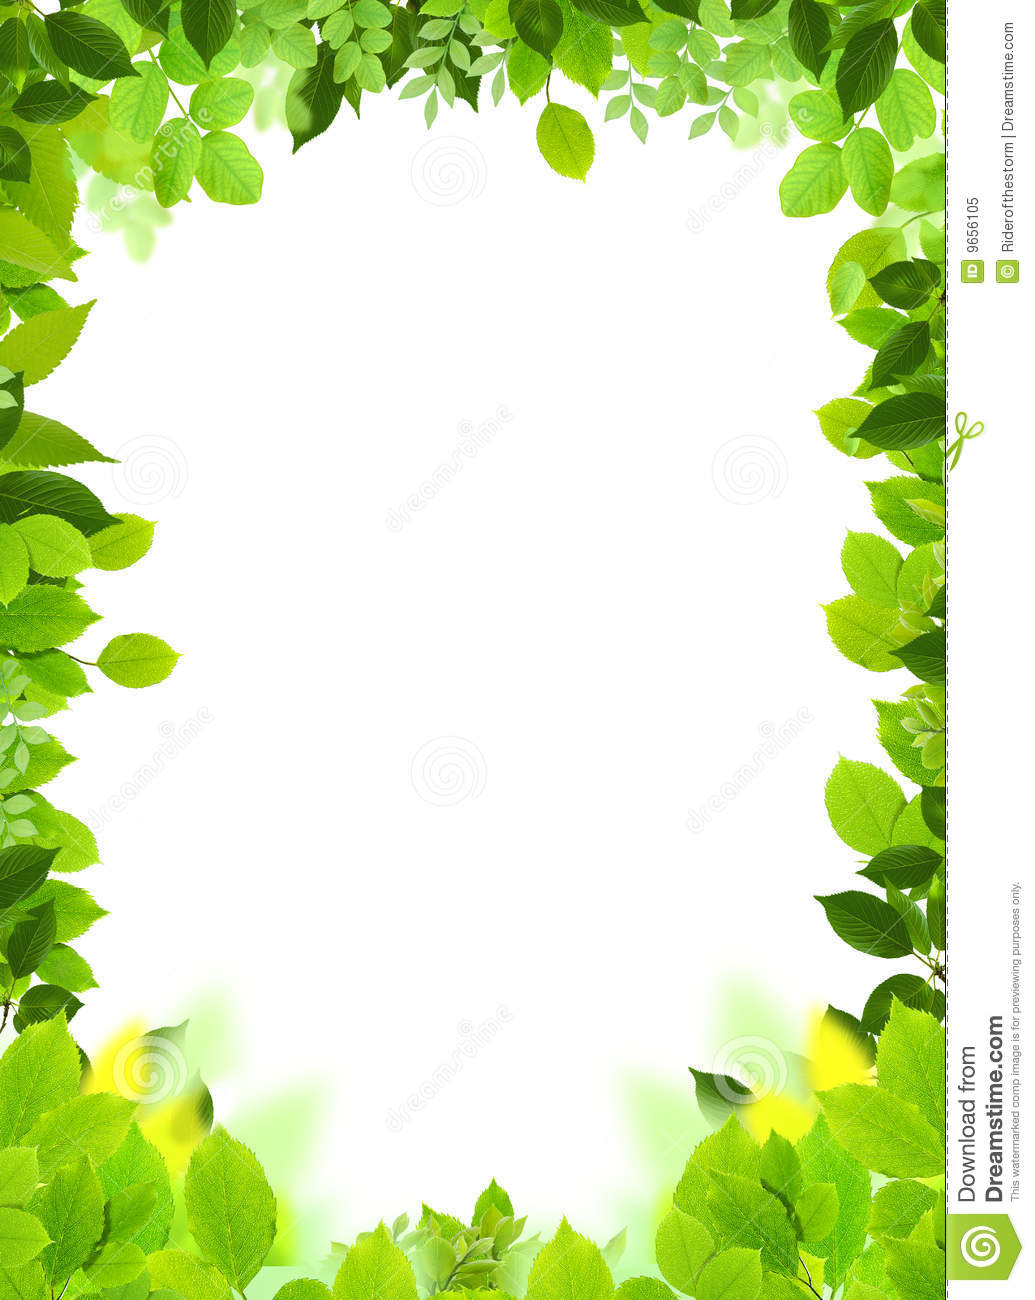 natural frame and template stock illustration illustration of green